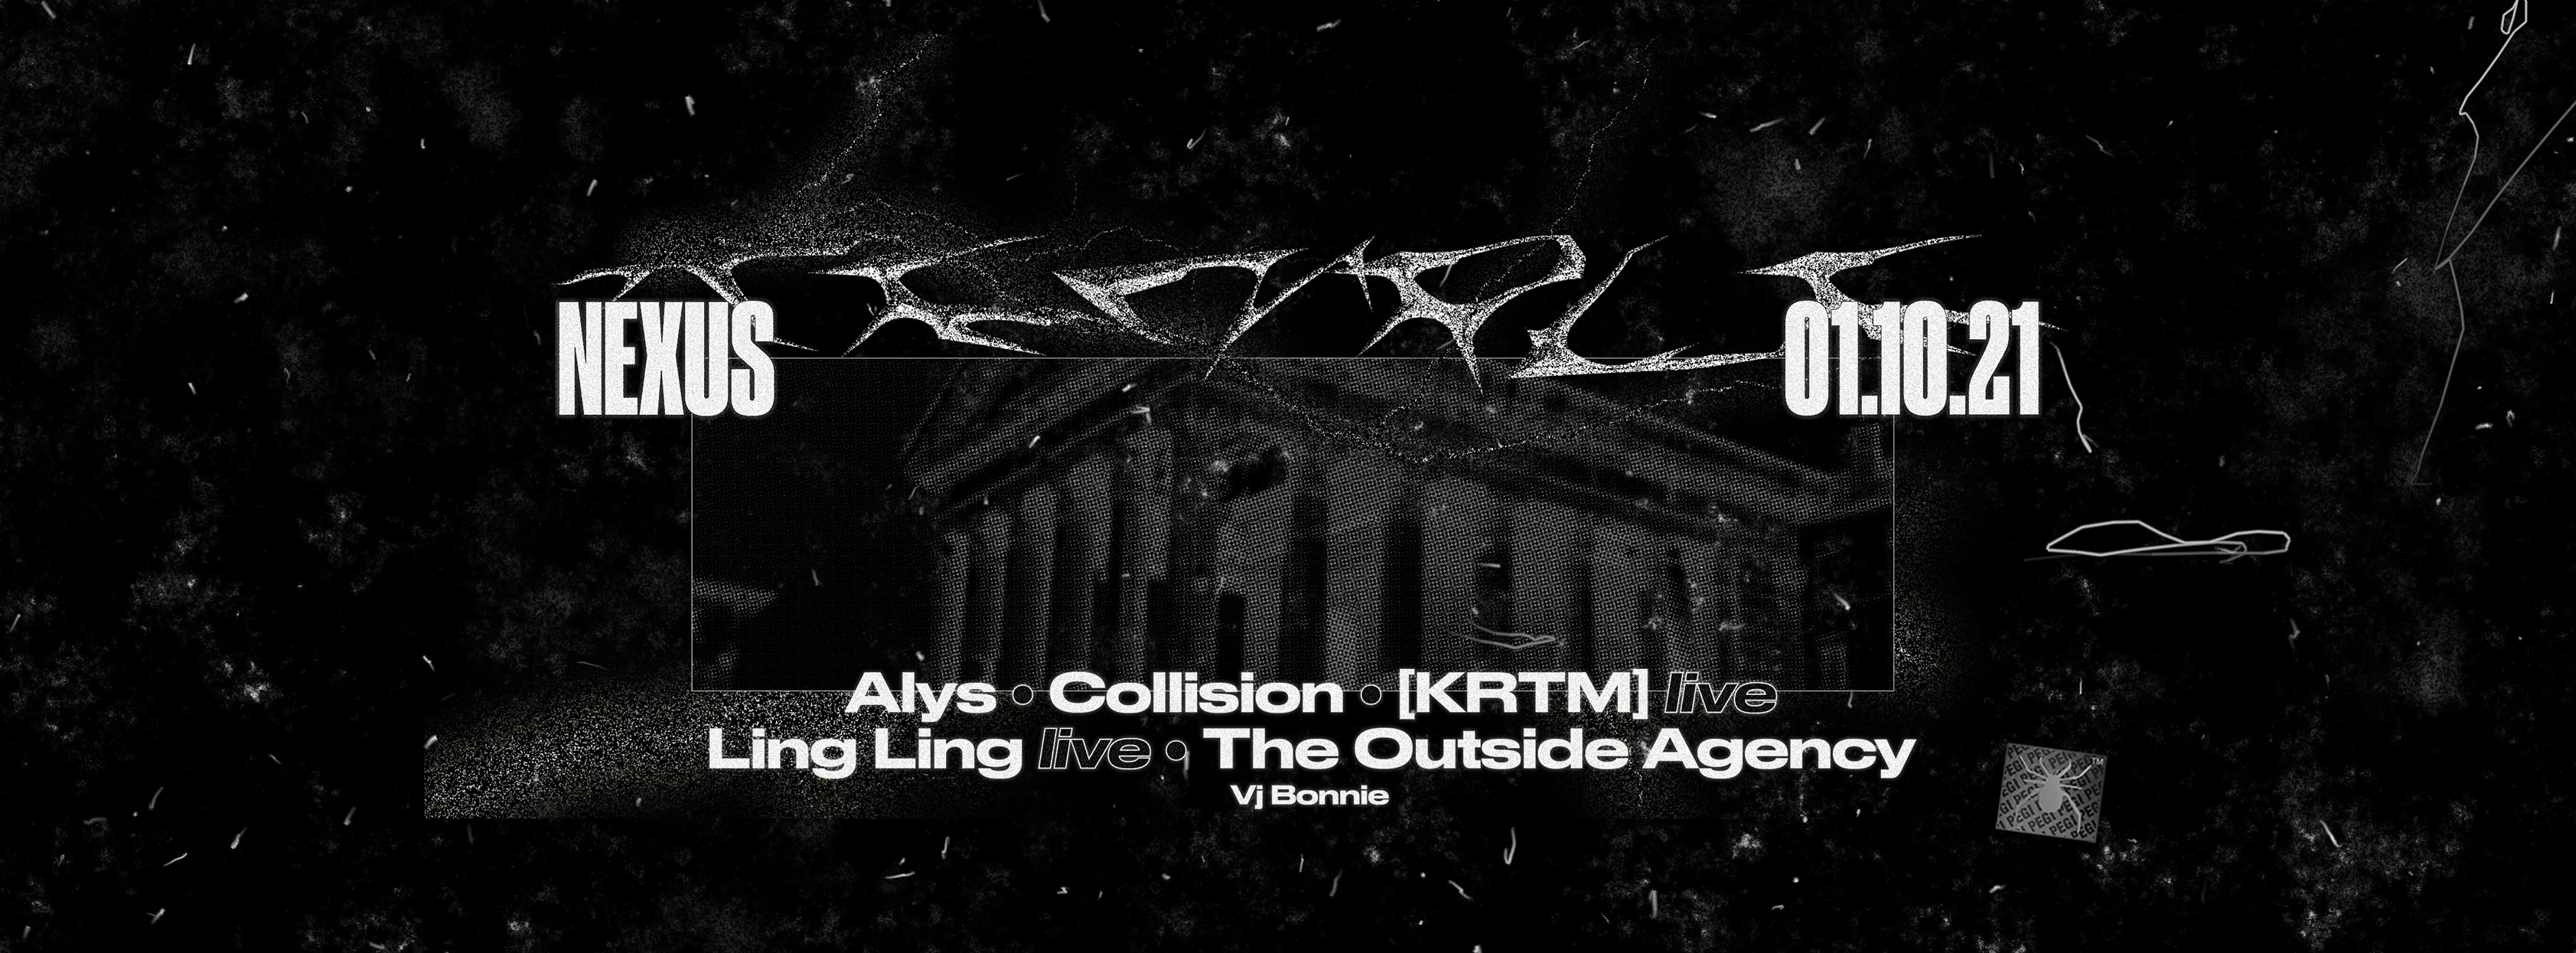 Temple w/ Collision - LingLing - KRTM - The Outside Agency